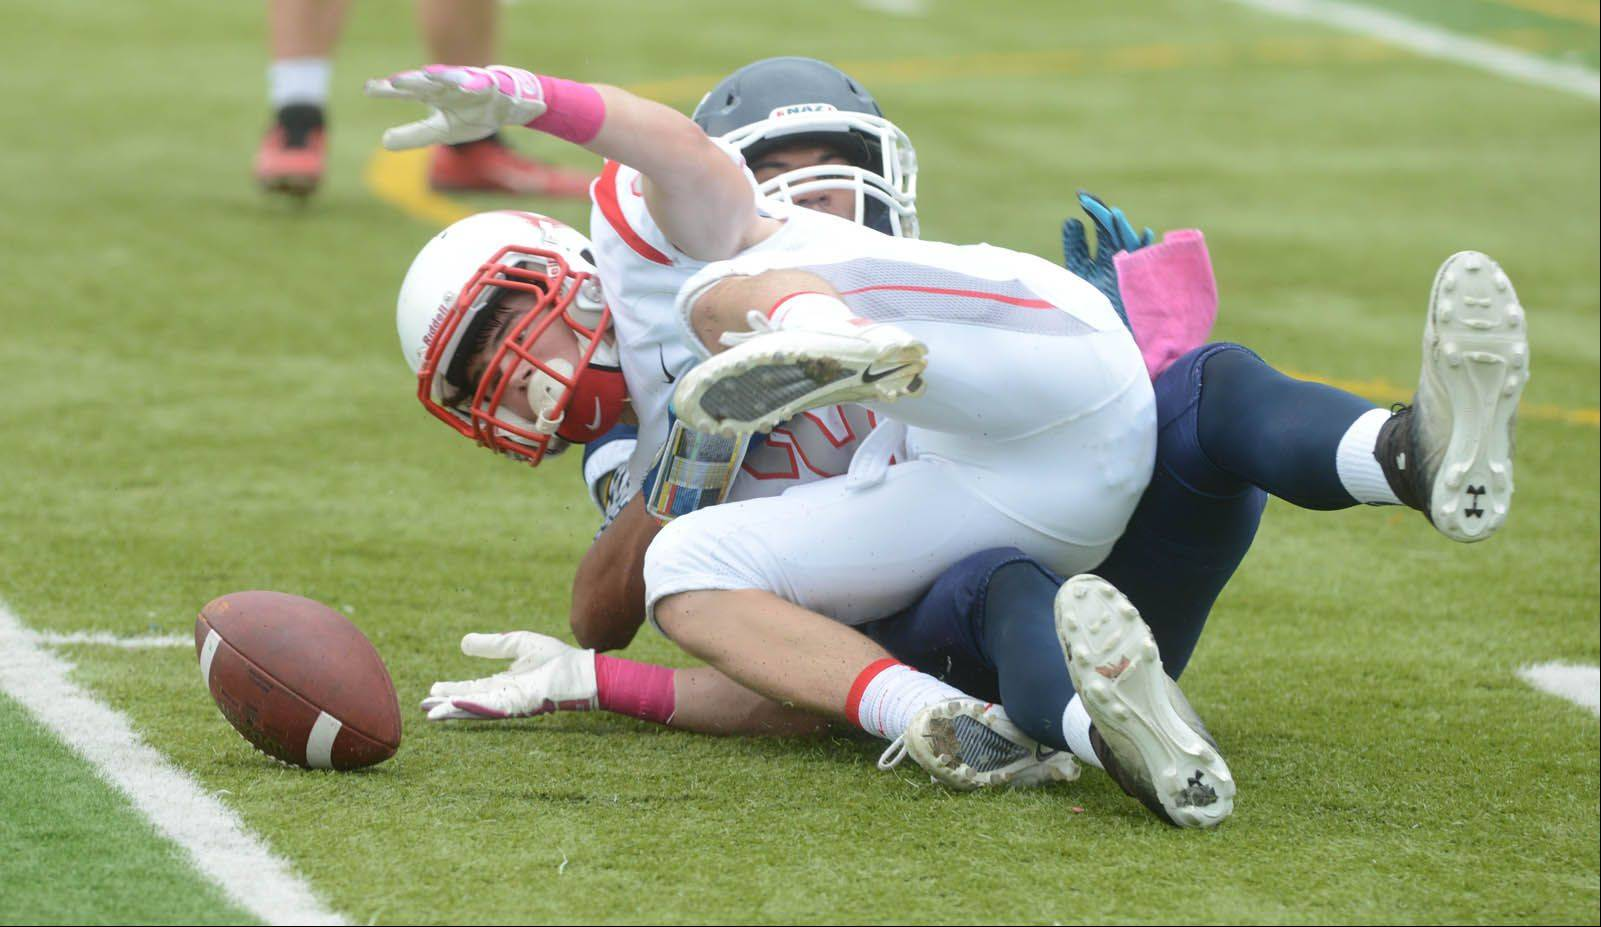 Images: Benet Academy at Nazareth Academy football